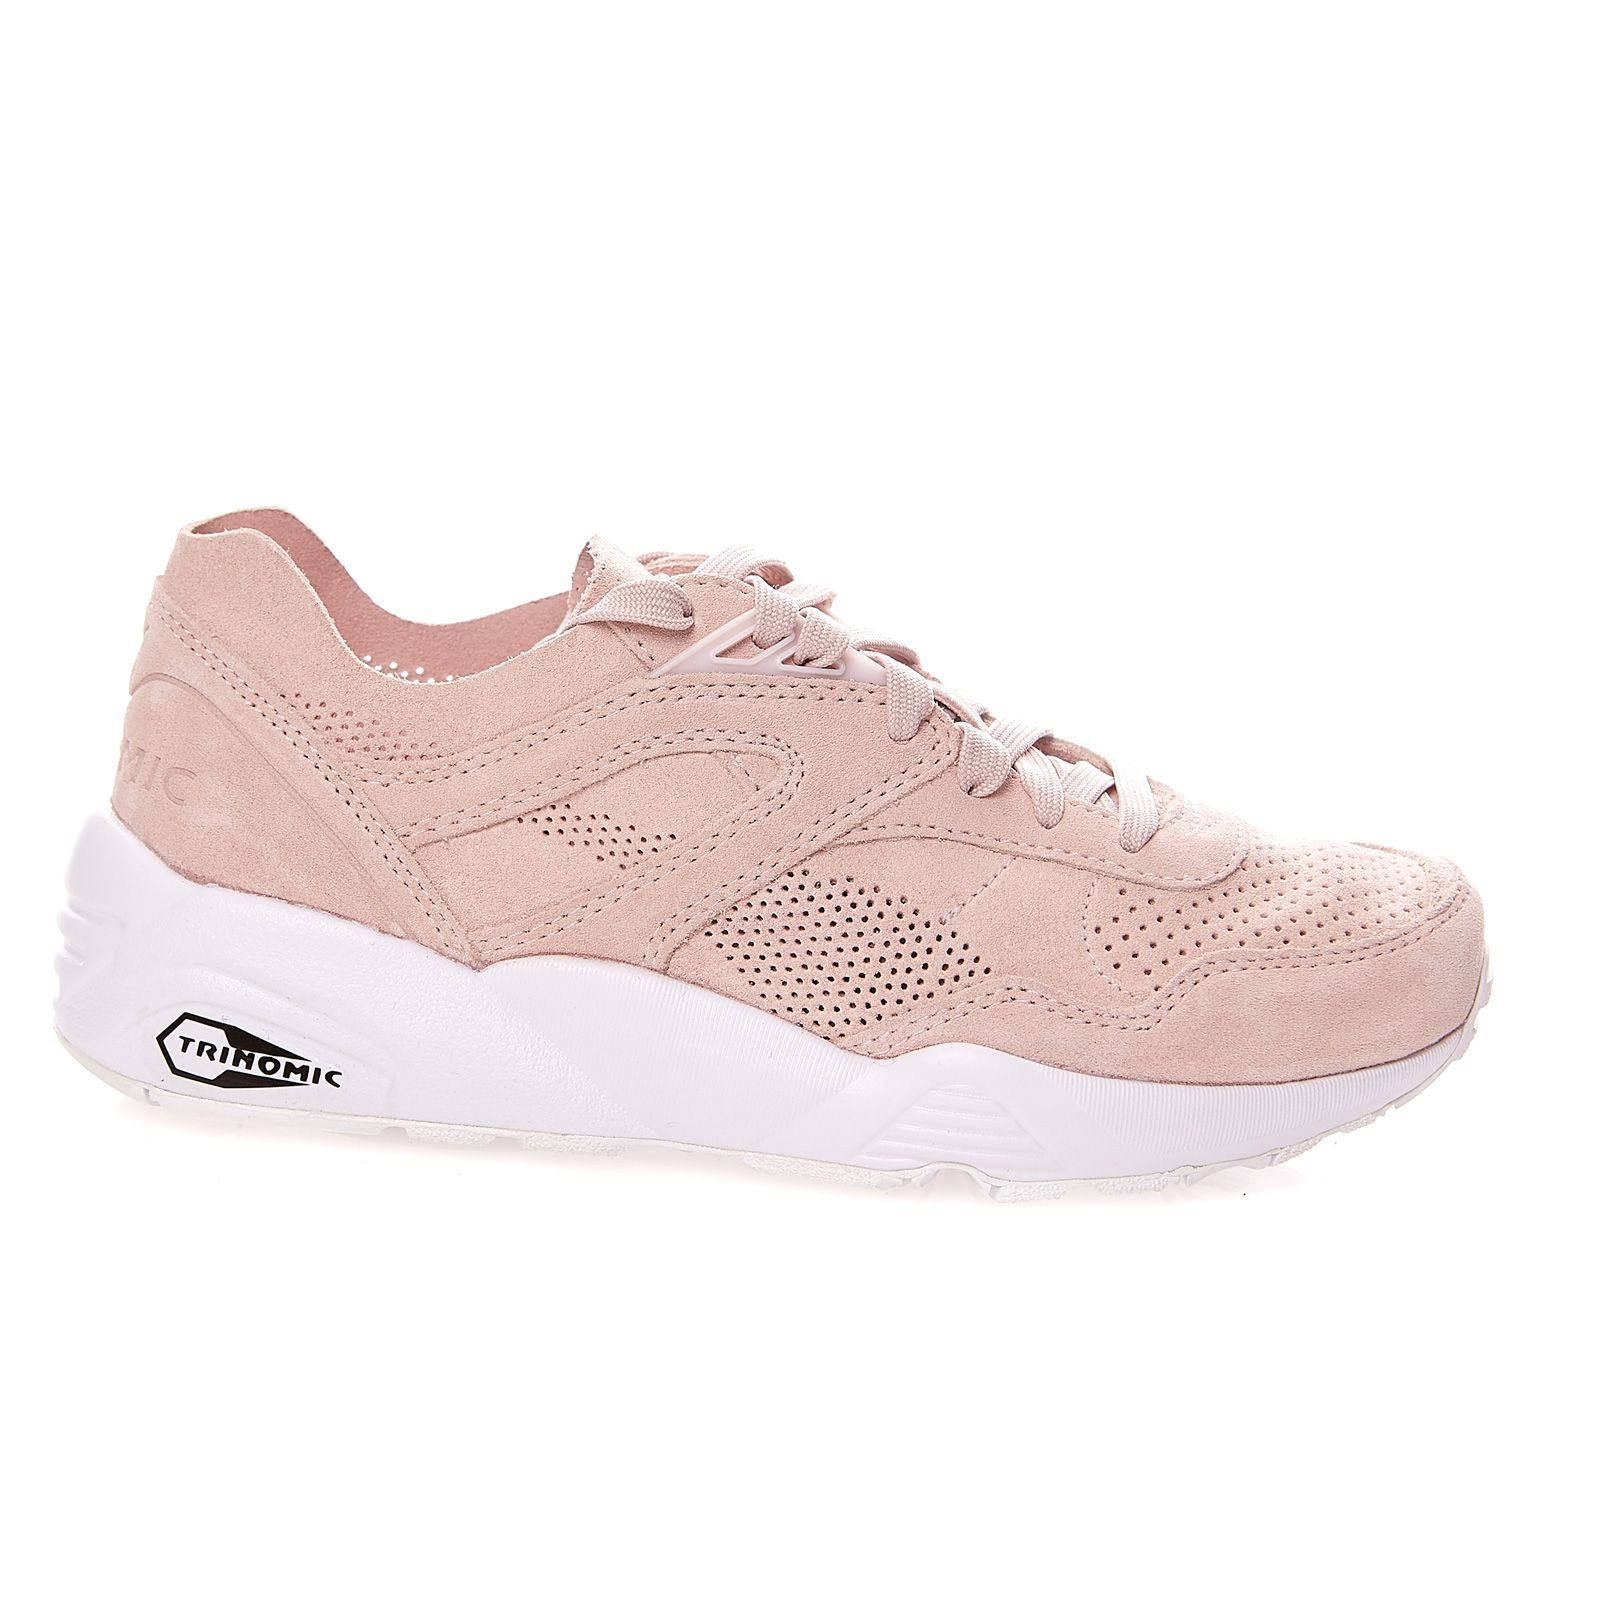 puma trinomic grise et rose